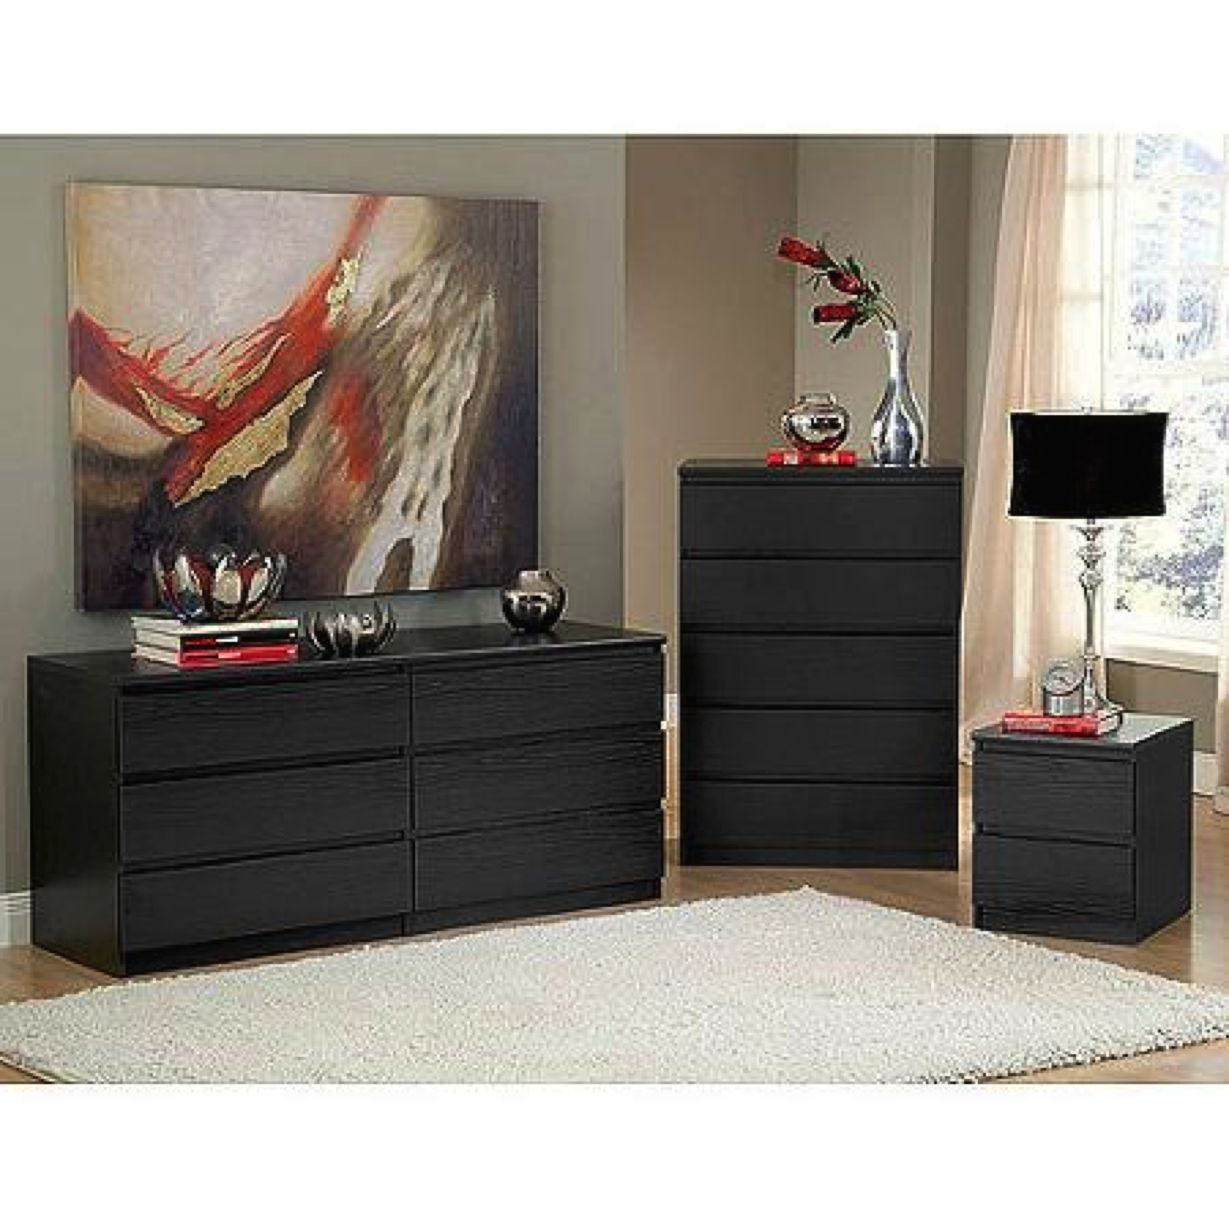 bedroom furniture set 3 piece dresser nightstand chest of drawers